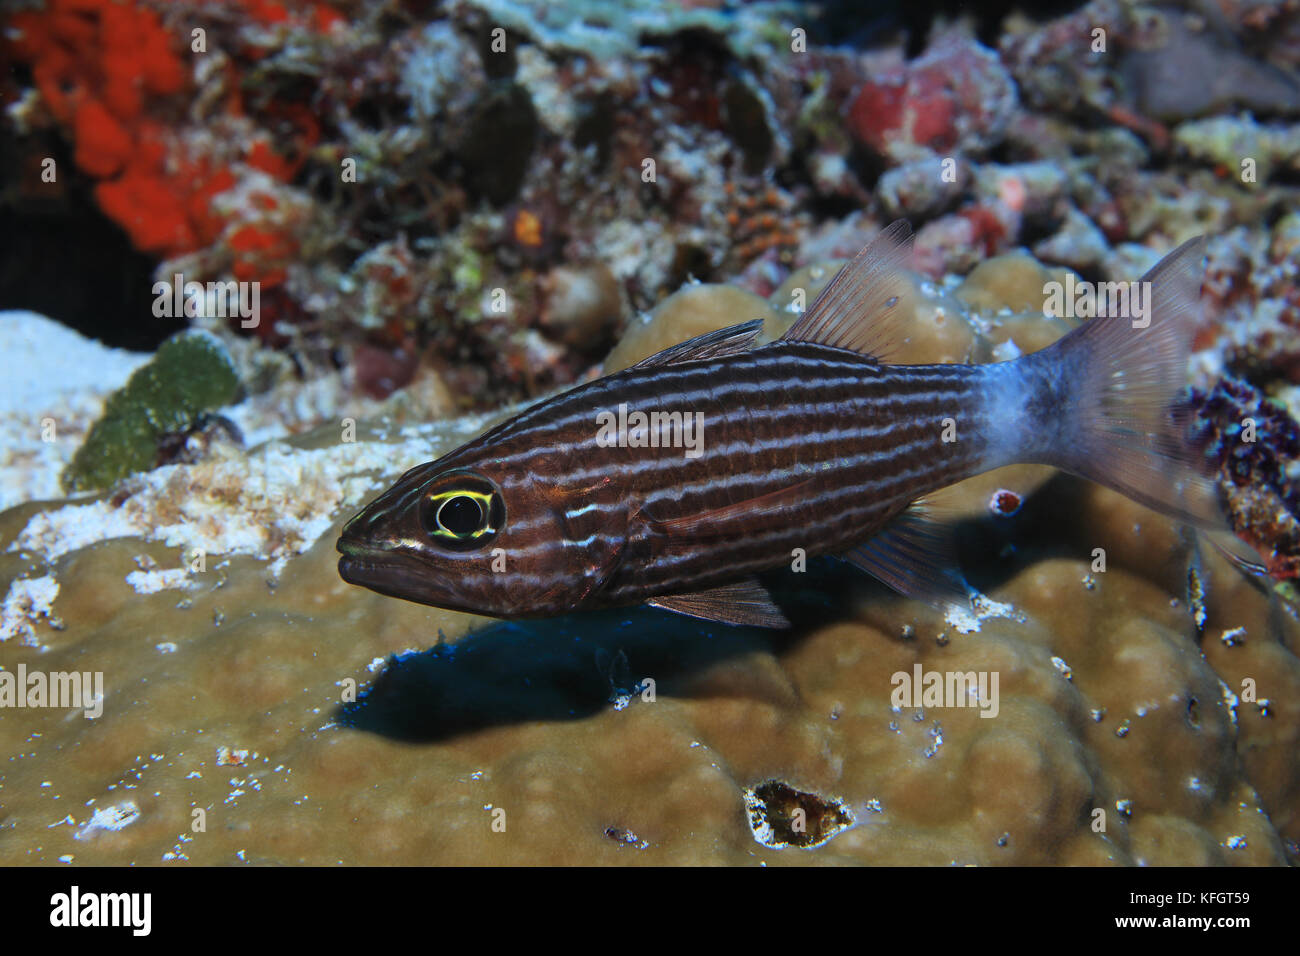 Large toothed cardinalfish (Cheilodipterus macrodon) underwater in the tropical coral reef of the Maldives - Stock Image